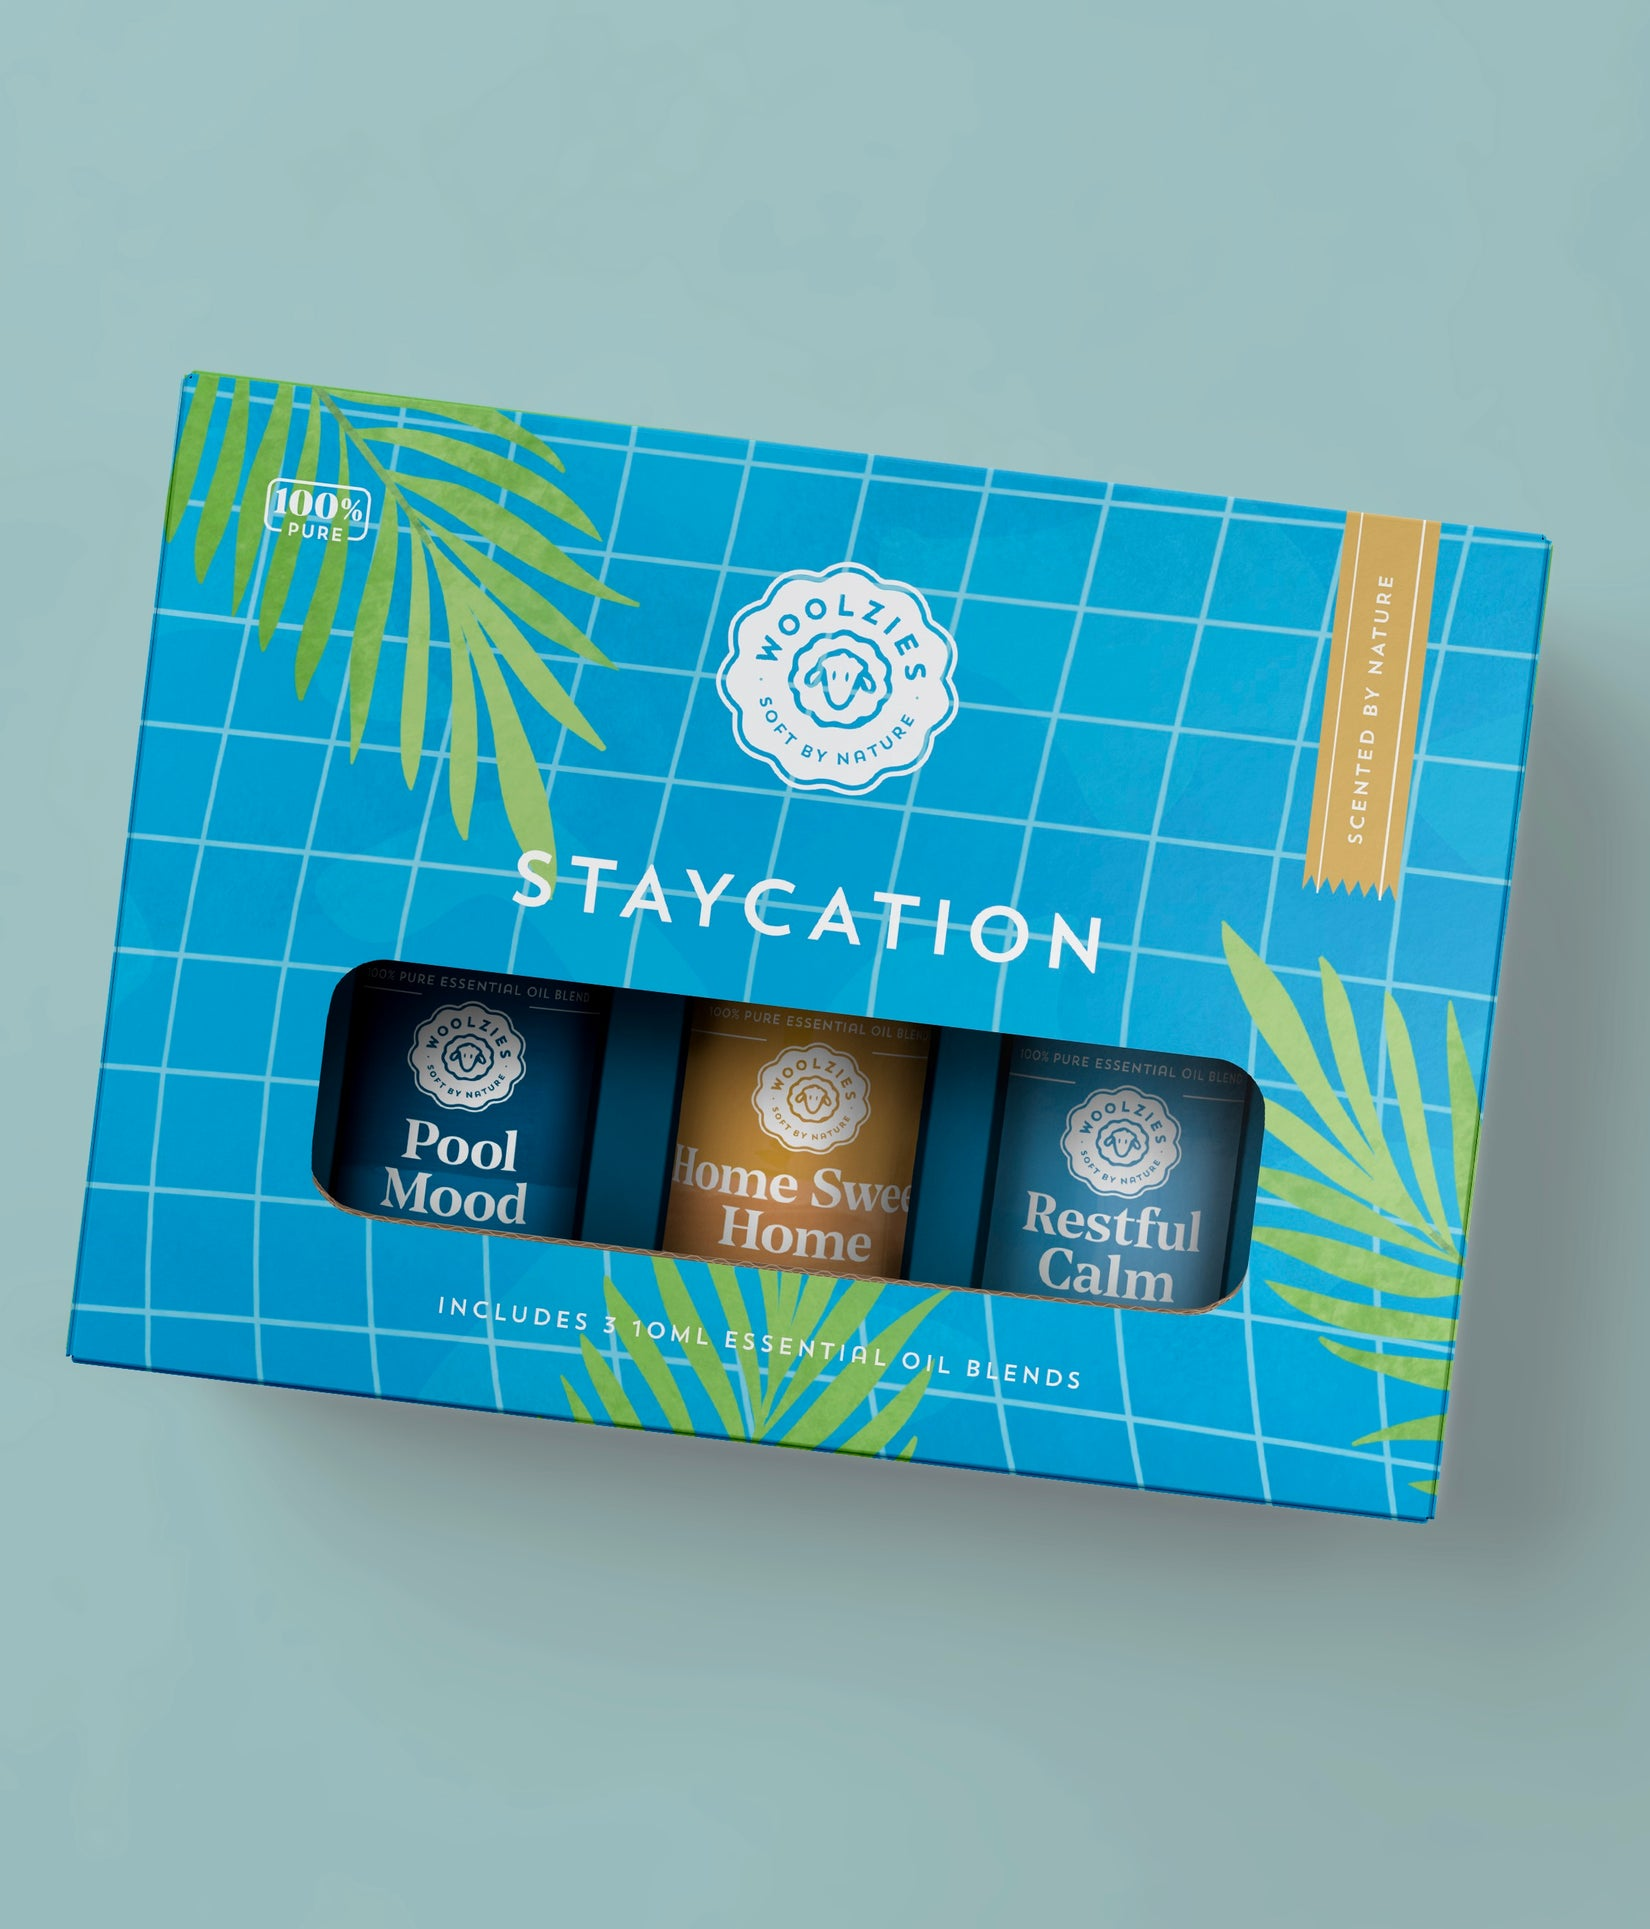 The Staycation Collection